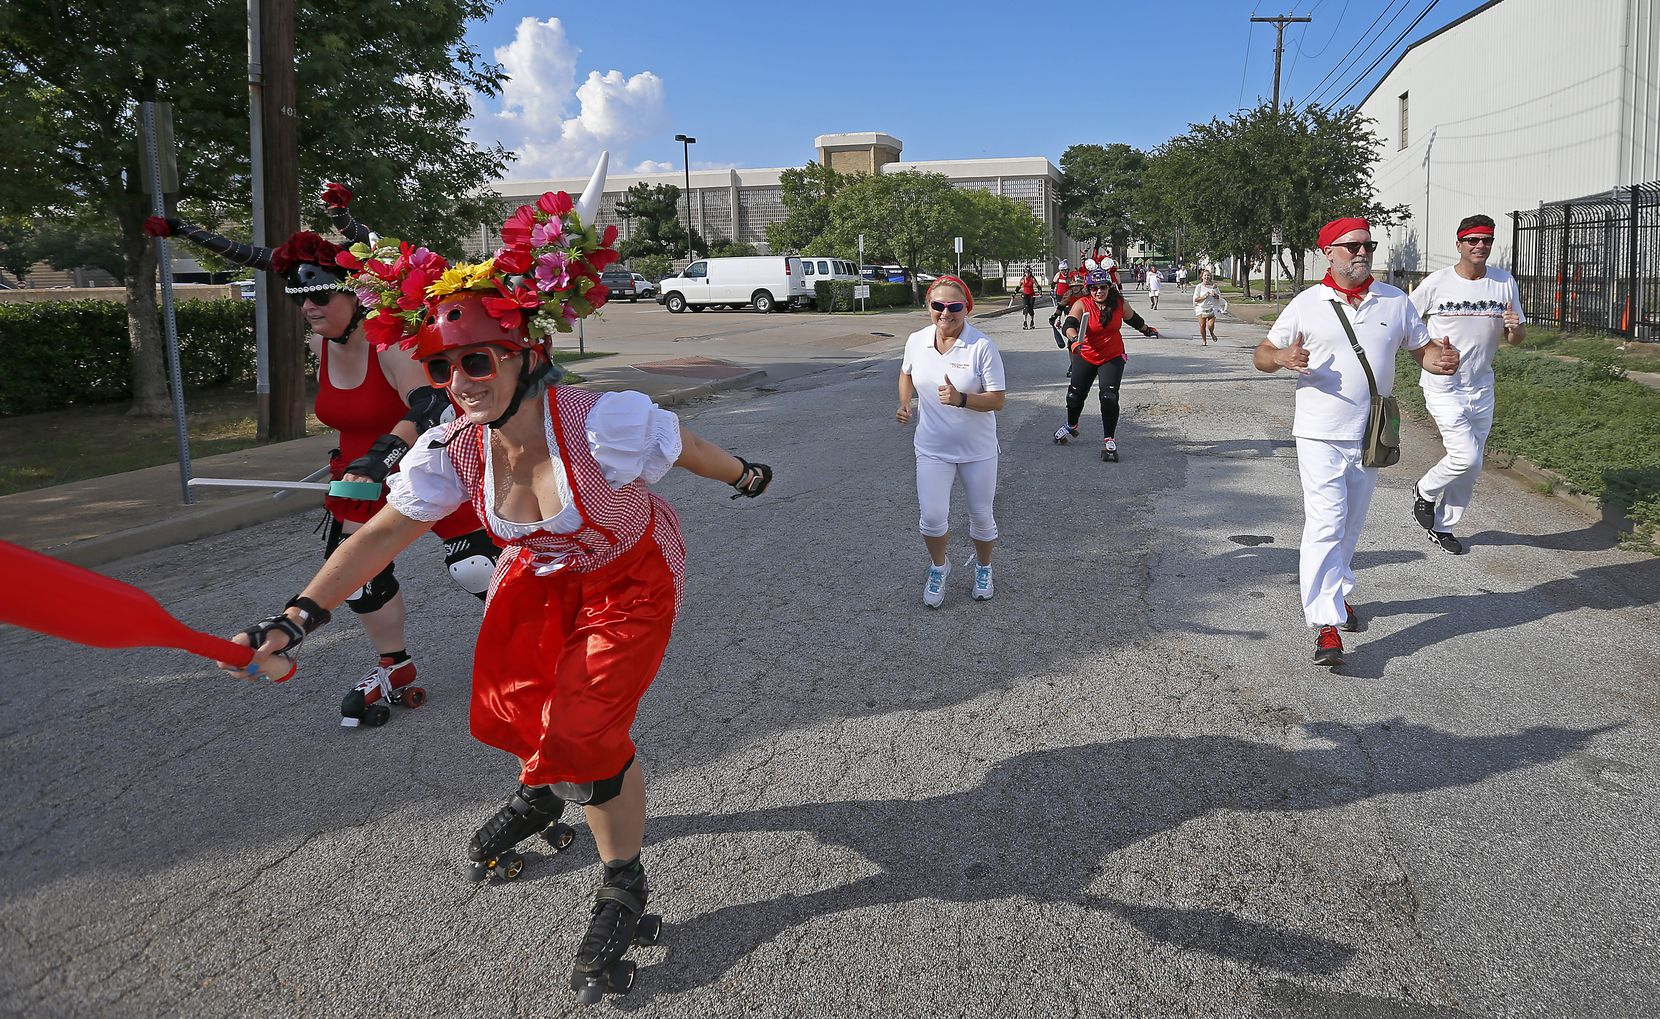 """Members of the Dallas Derby Devils roller-skated past runners on McKee Street during the """"Cedars Running of the Bulls"""" event in Dallas on July 16, 2017. The bulls were played by the Derby Devils, who chased the runners on the less-than-half-mile run."""